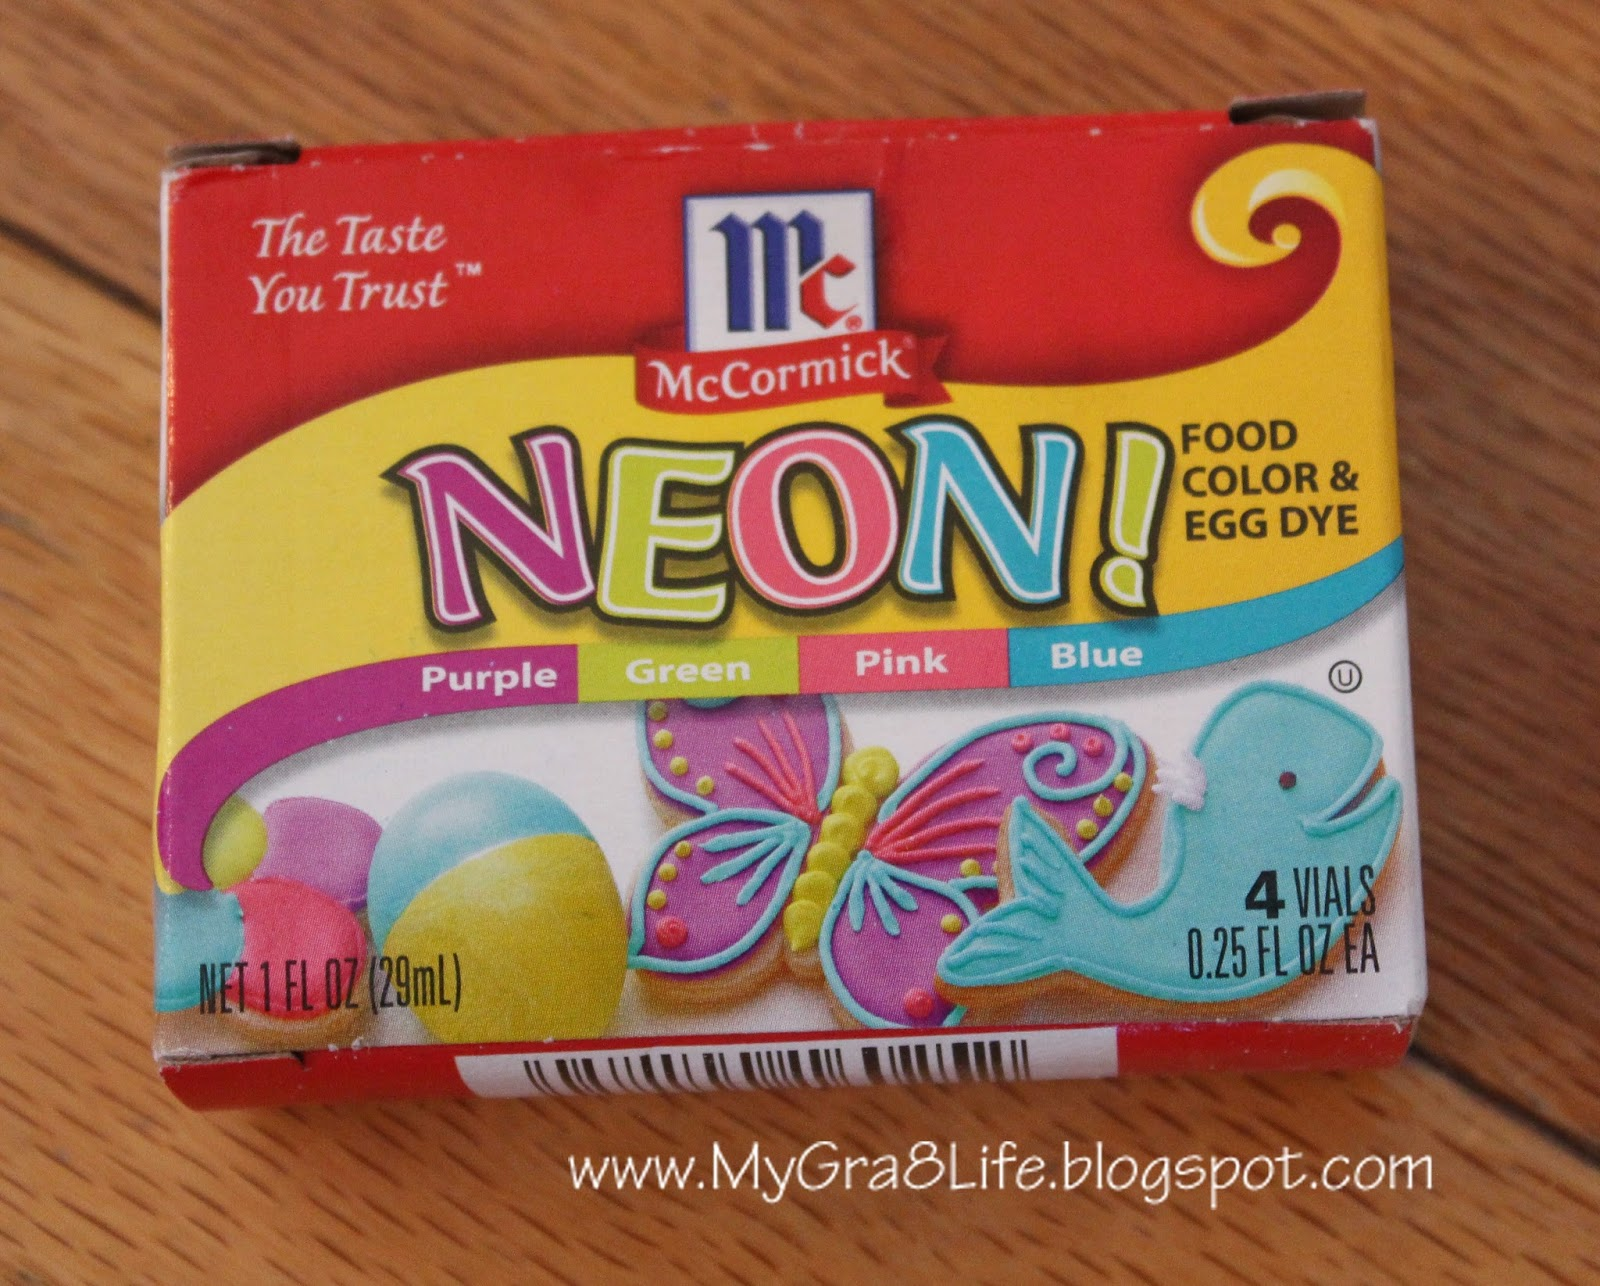 Mccormick food coloring chart gallery free any chart examples mccormick neon food coloring chart choice image free any chart mccormick neon food coloring chart image geenschuldenfo Gallery